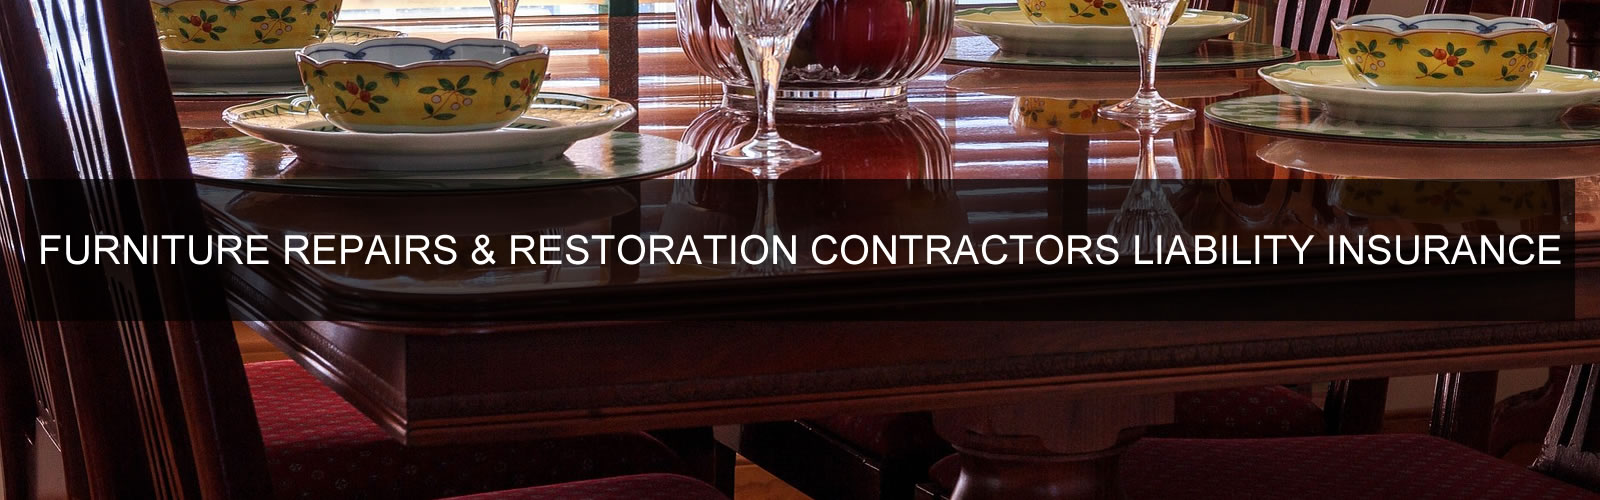 Furniture Restoration Contractors Liability Insurance